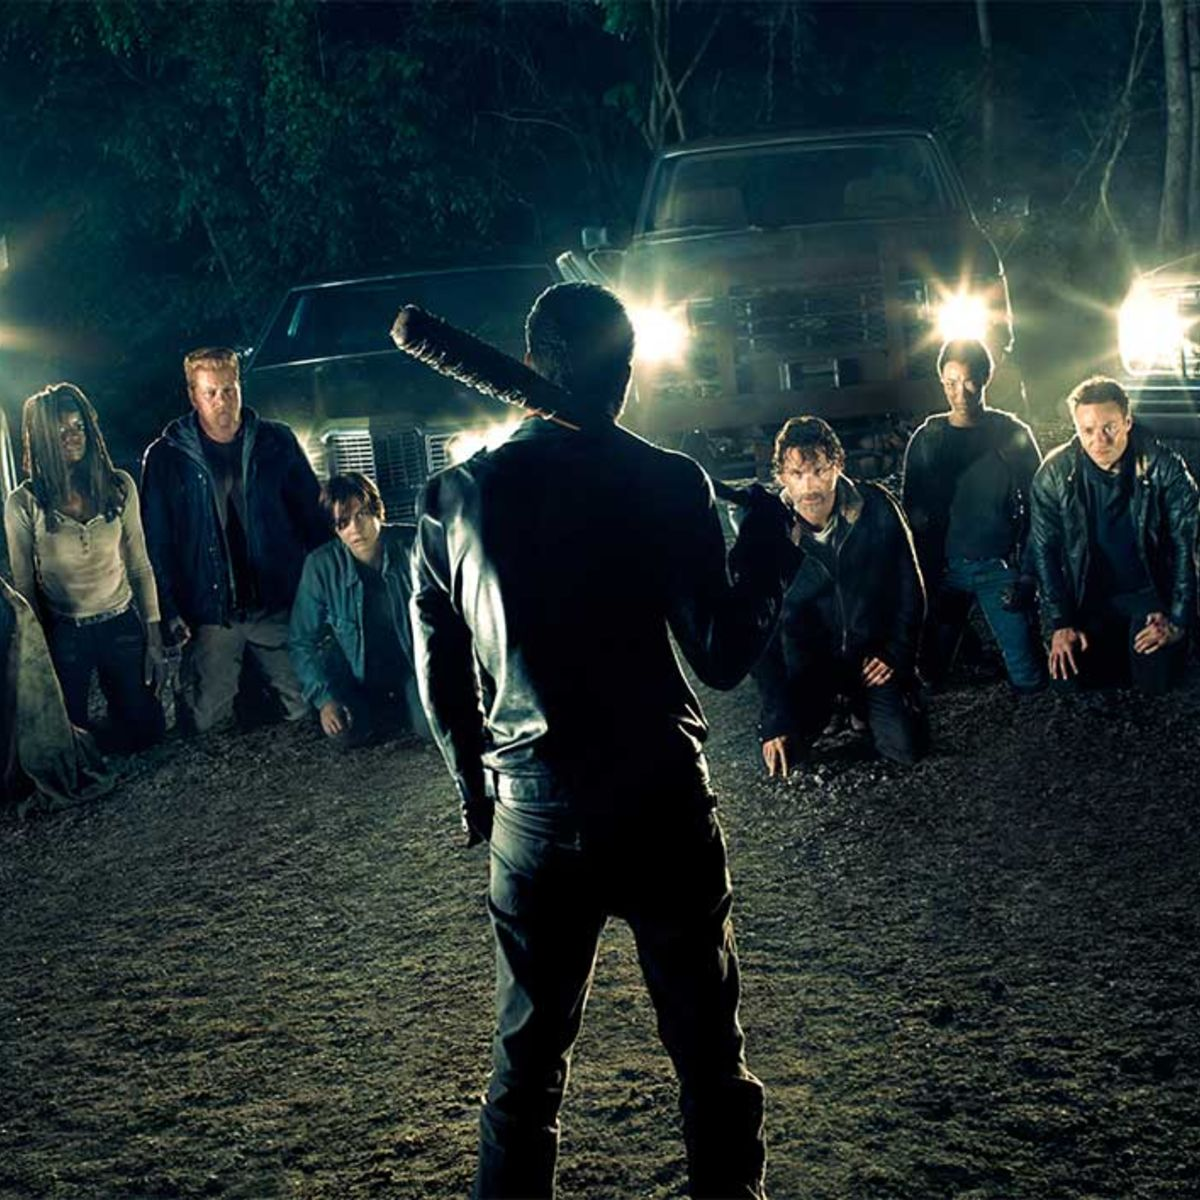 the-walking-dead-season-7-key-art.jpg